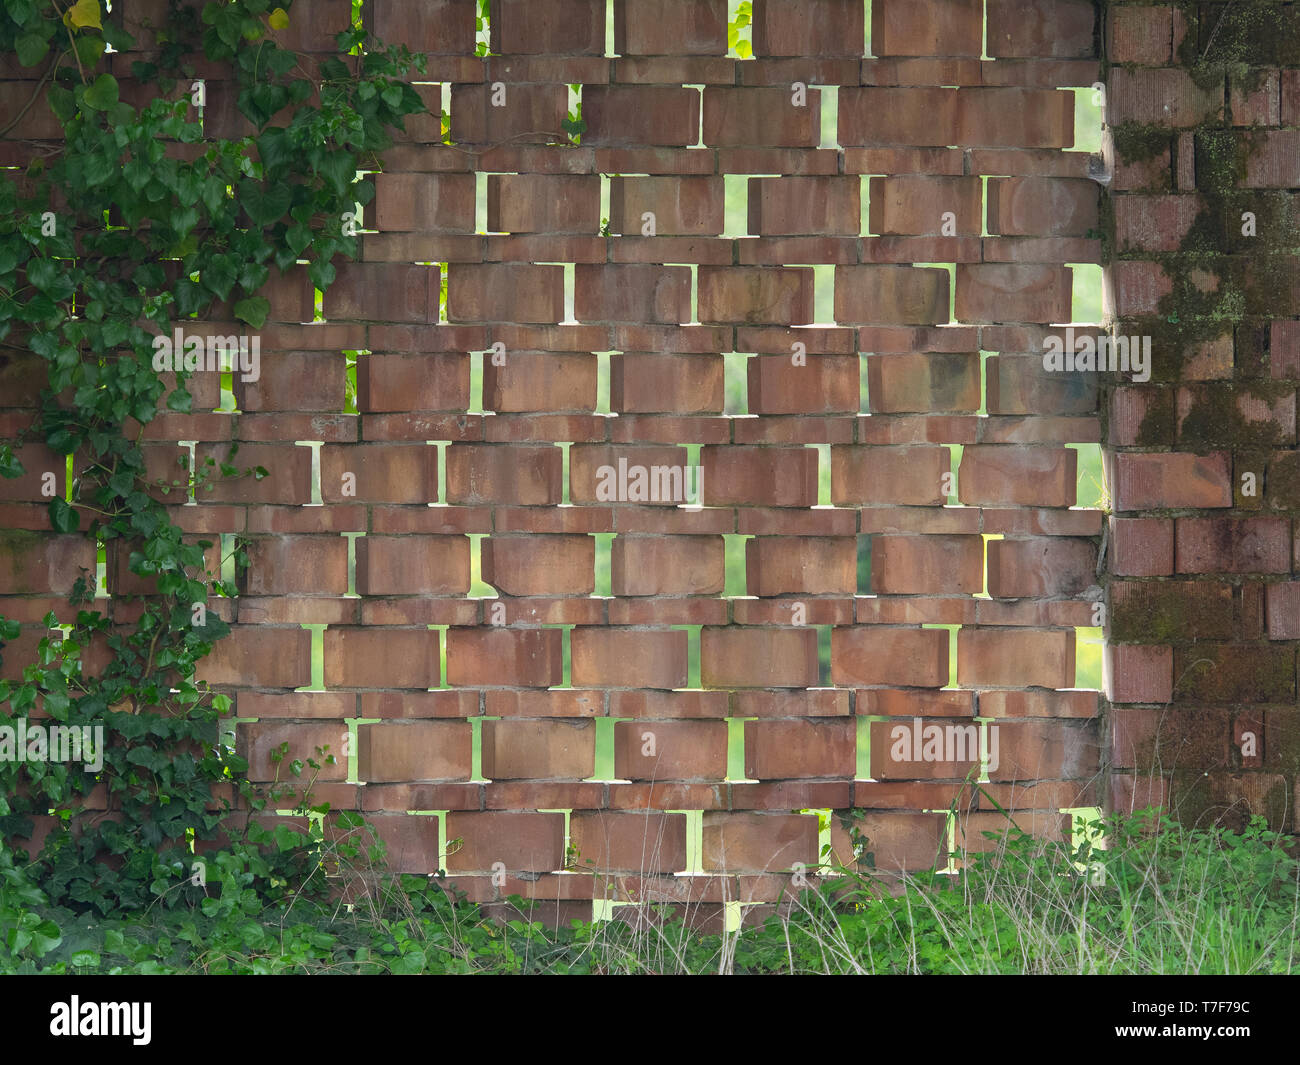 wall made with  bricks arranged diagonally to create vent holes - Stock Image